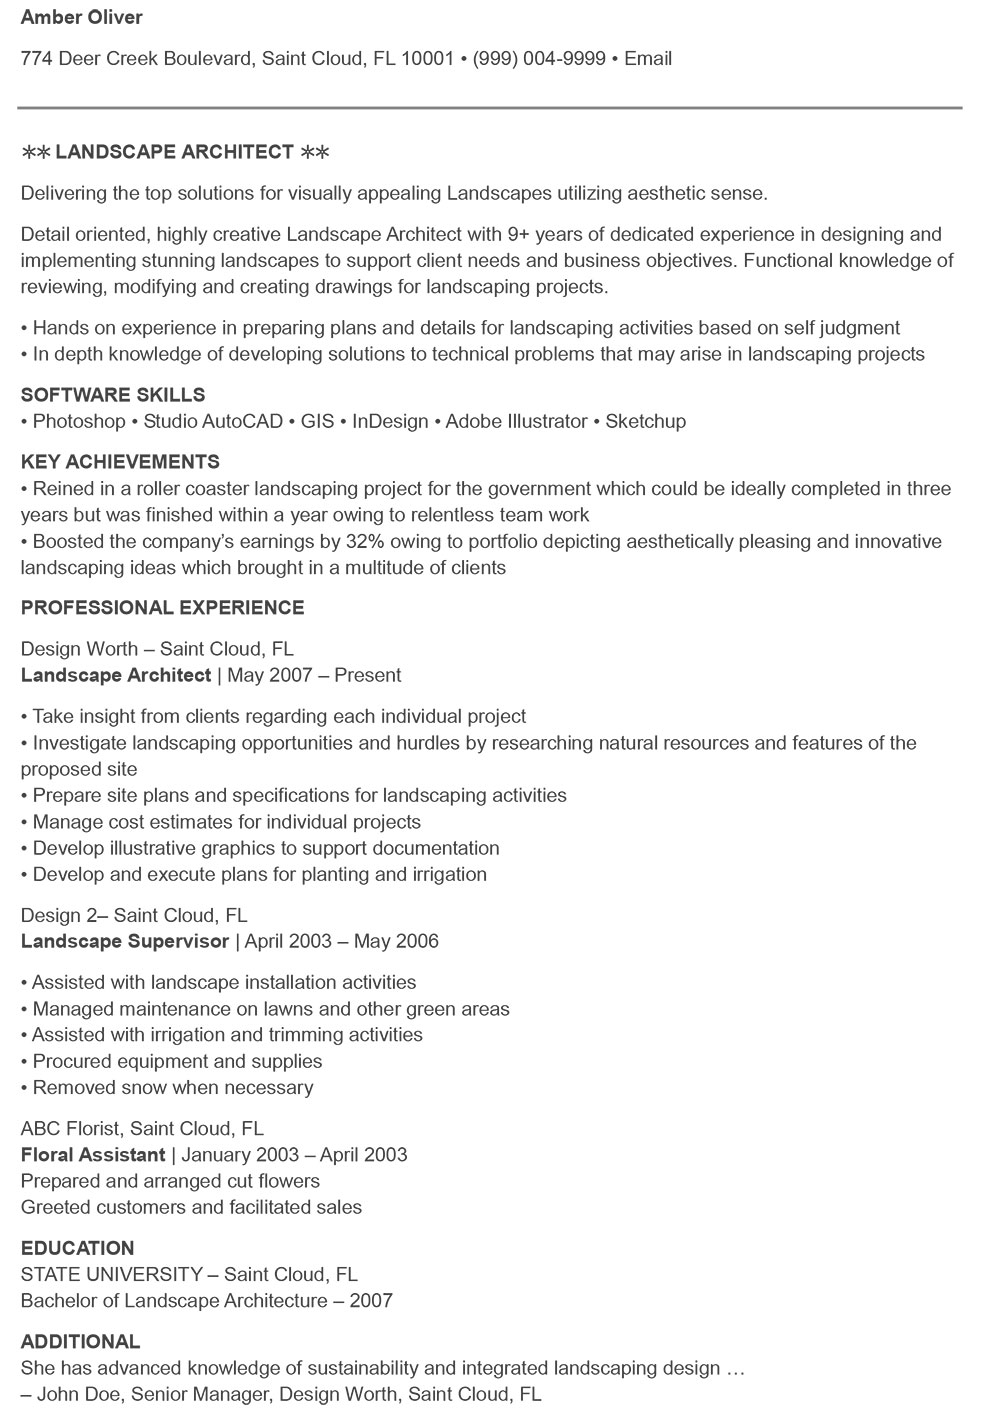 The Architecture Resume That Gets You Hired Templates Included